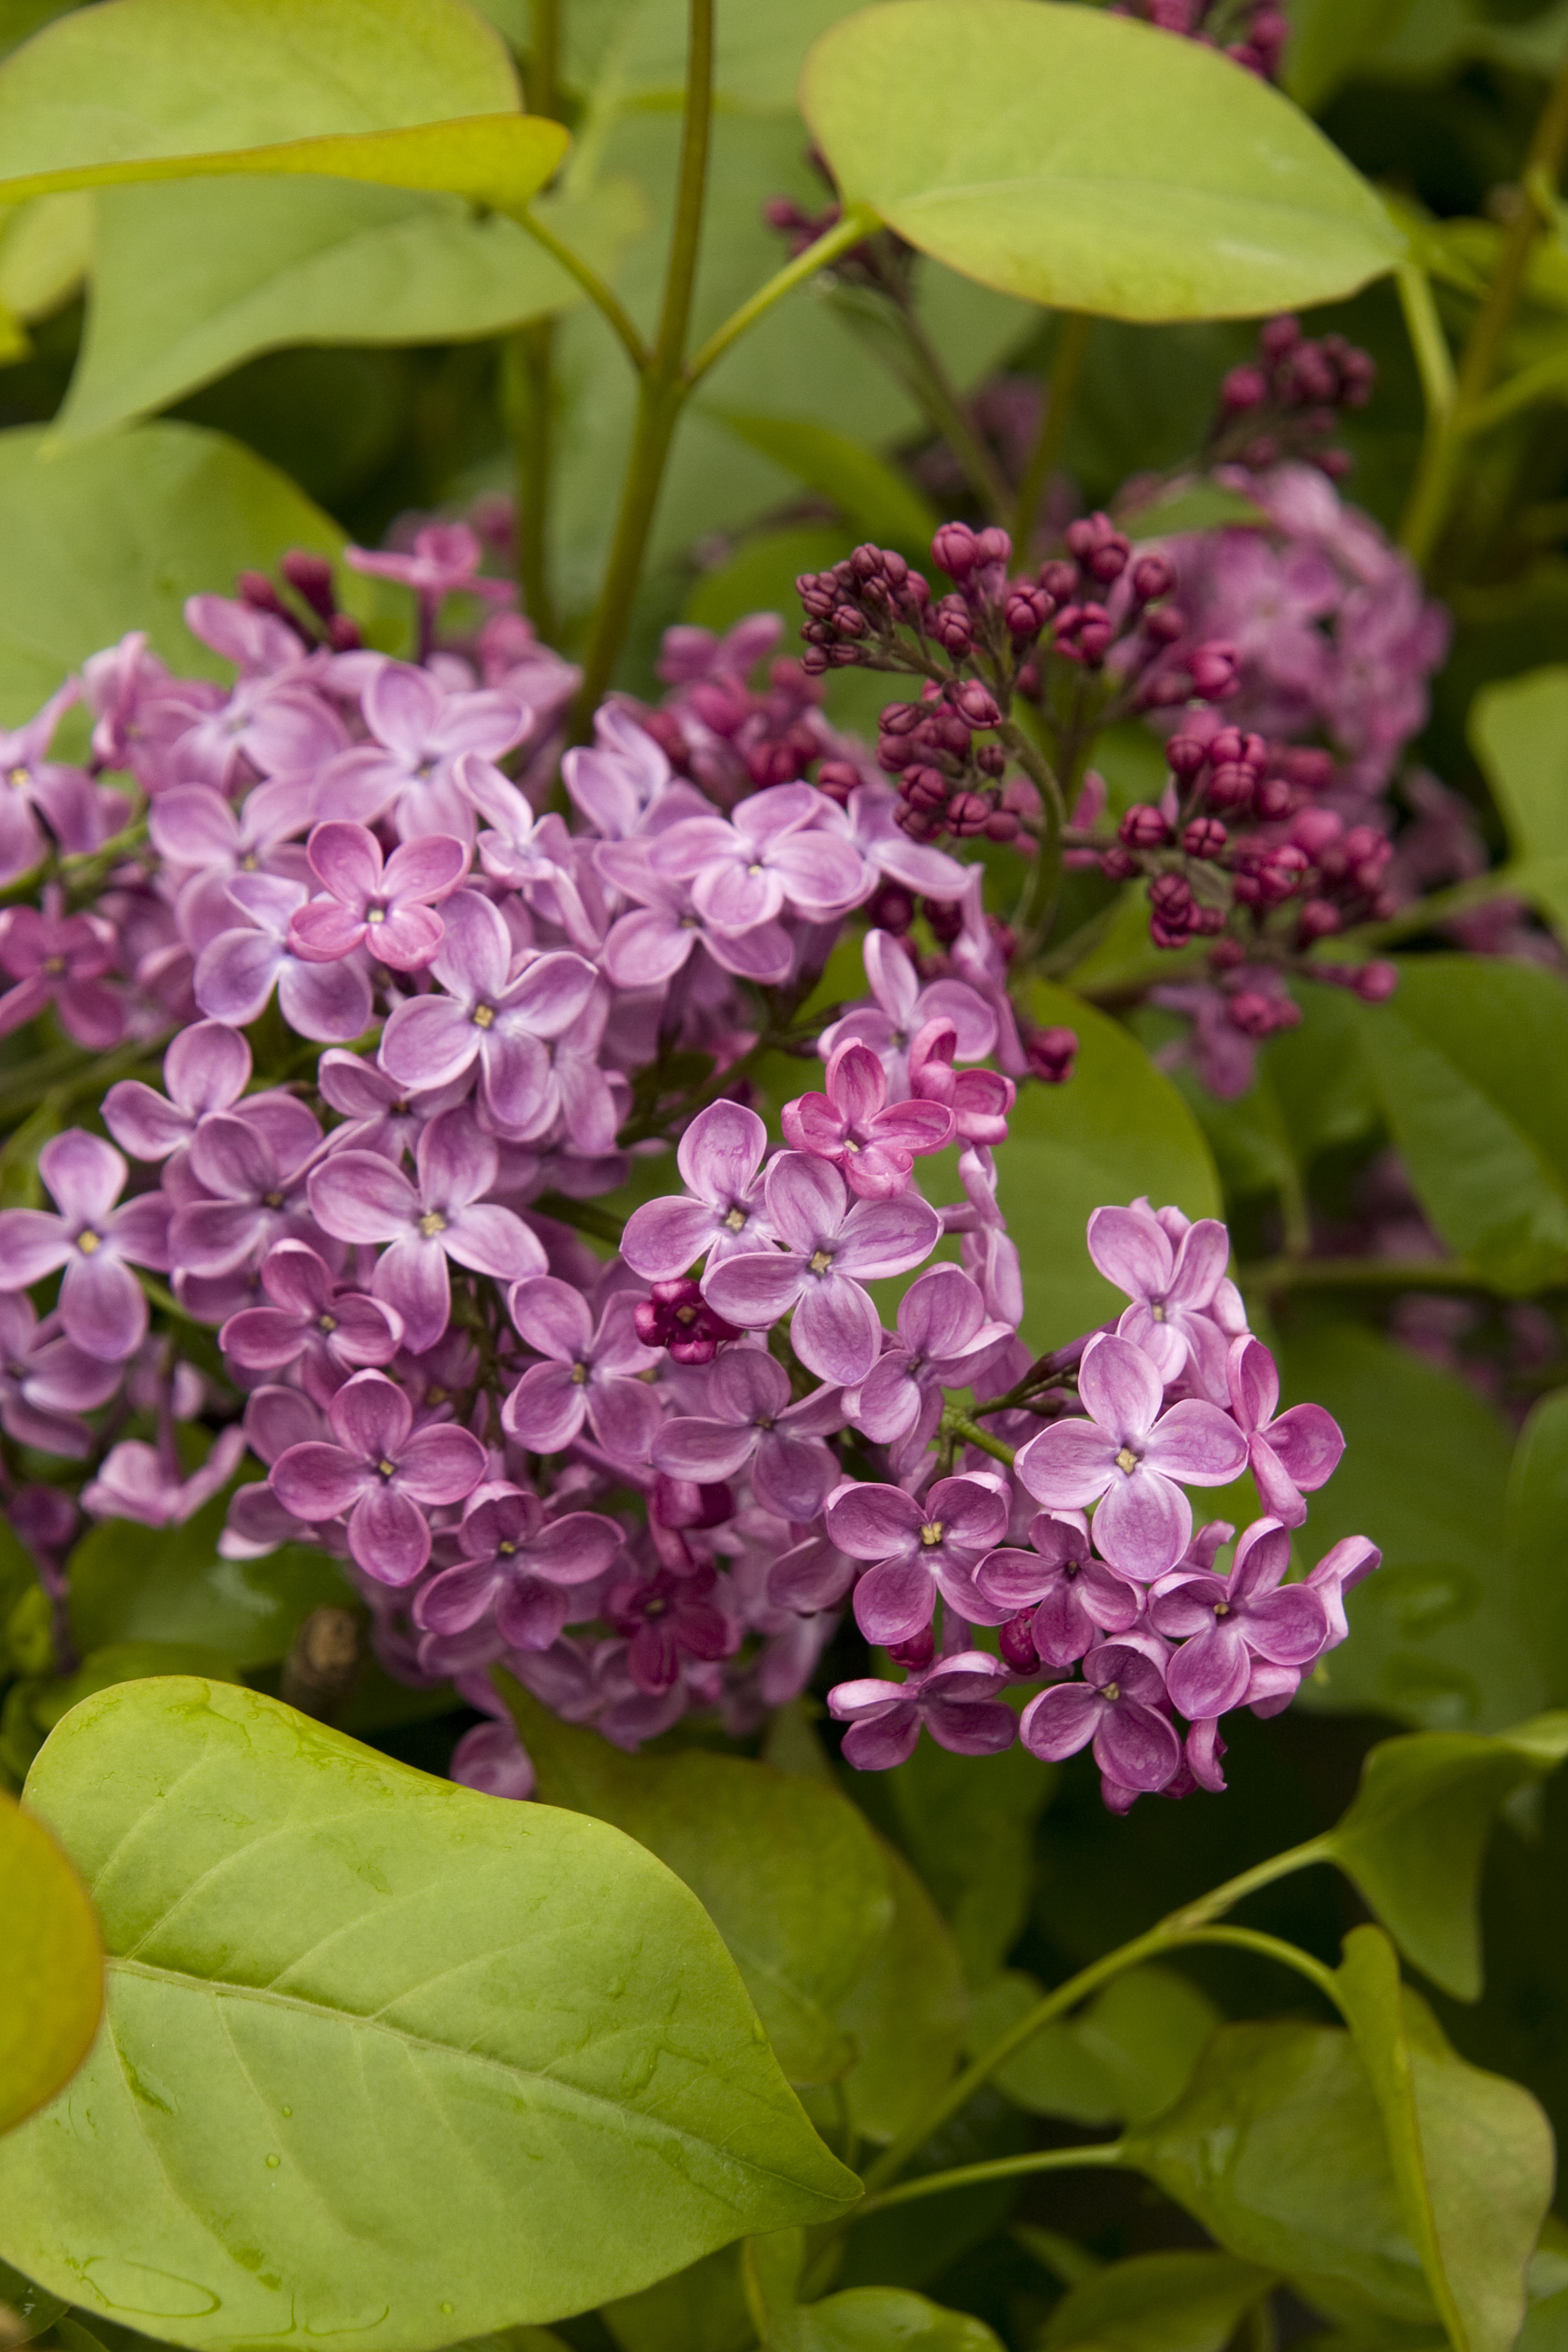 Pocahontas Canadian Lilac Extends The Lilac Season With This Extremely Hardy Early Blooming Variety Deep Maroon Purple Bud Flowering Shrubs Shrubs Lilac Tree